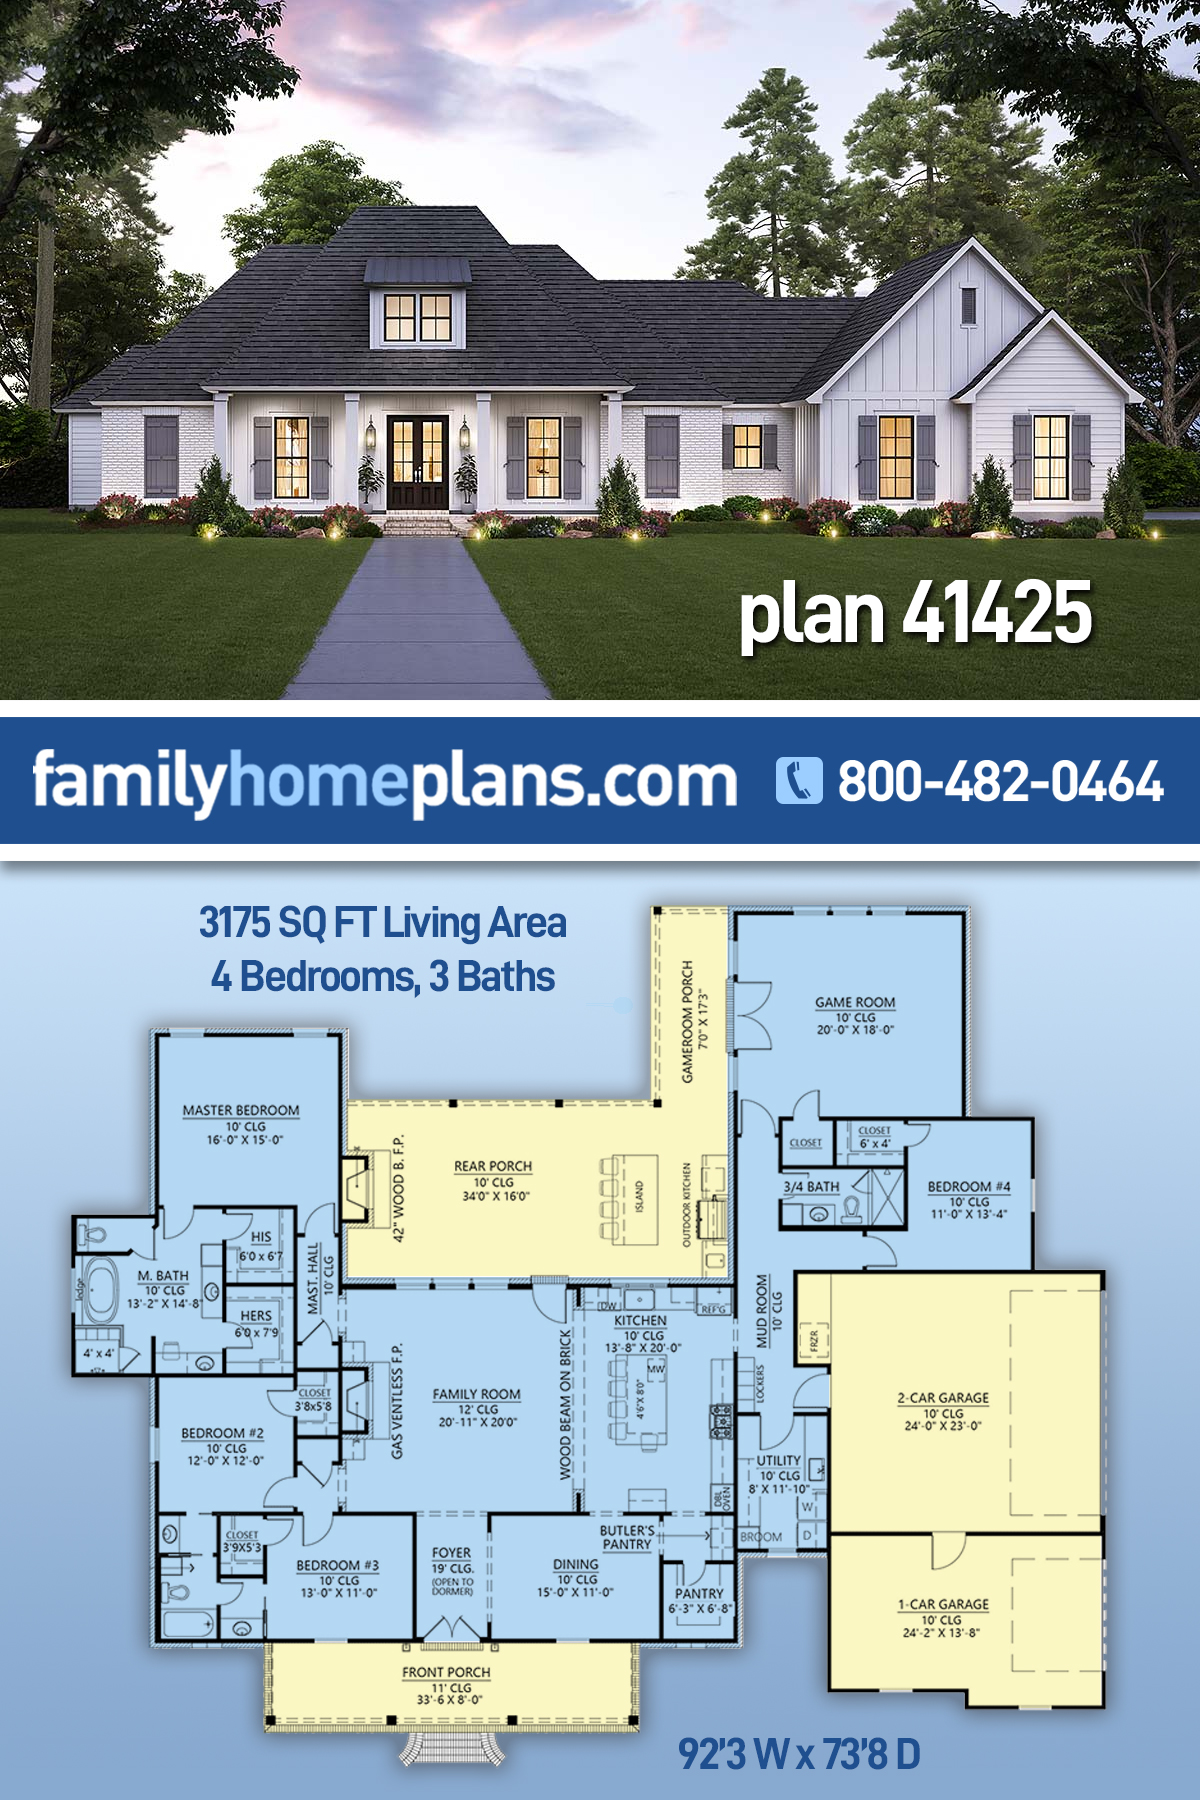 Farmhouse, French Country House Plan 41425 with 4 Beds, 3 Baths, 3 Car Garage